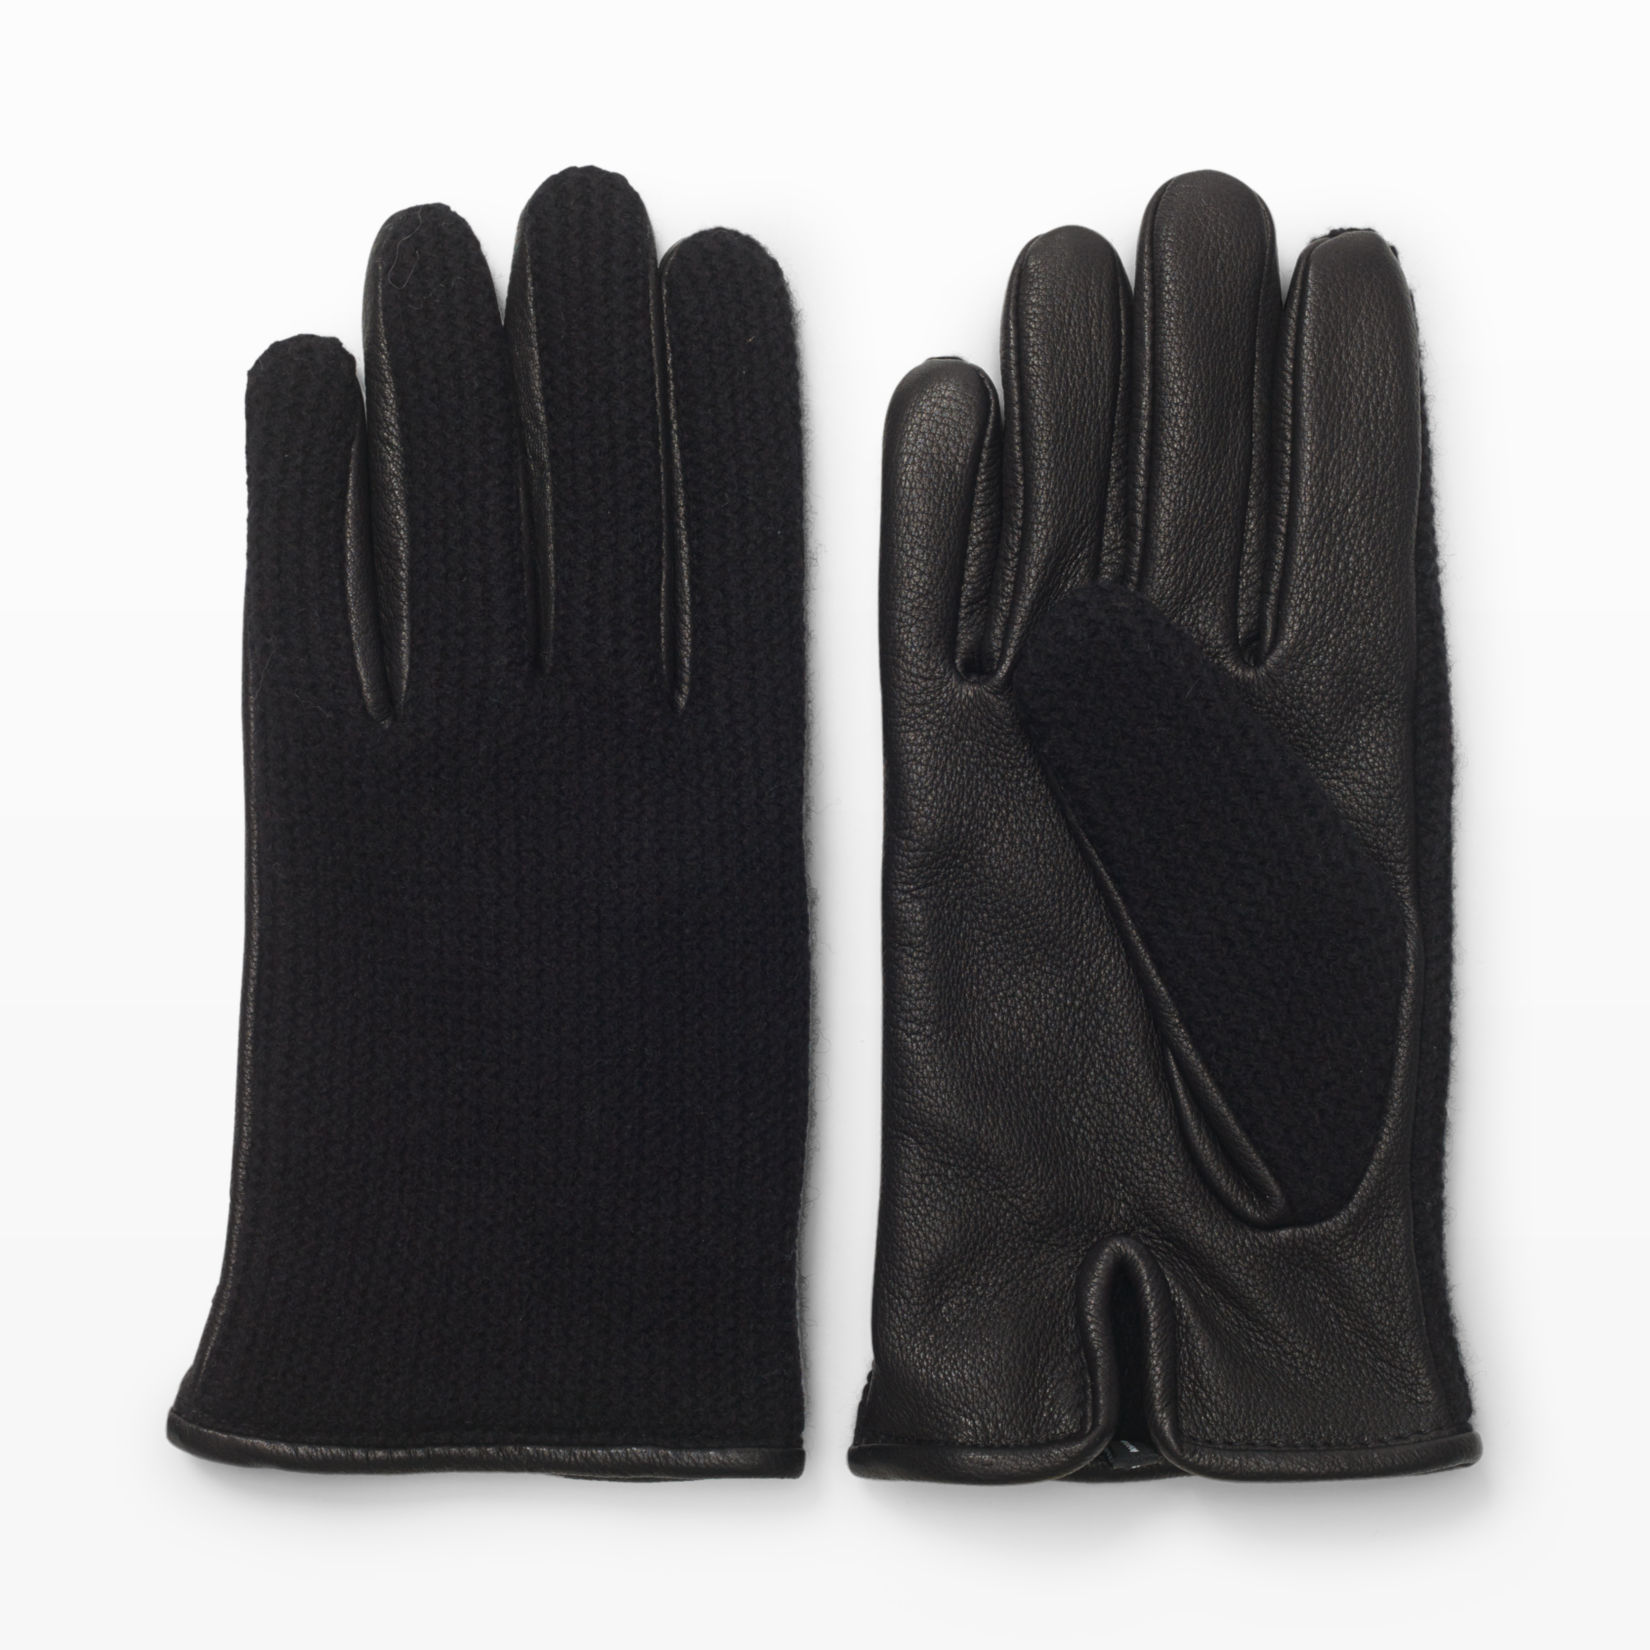 Mens leather gloves grey - Men Half Knit Leather Glove Club Monaco